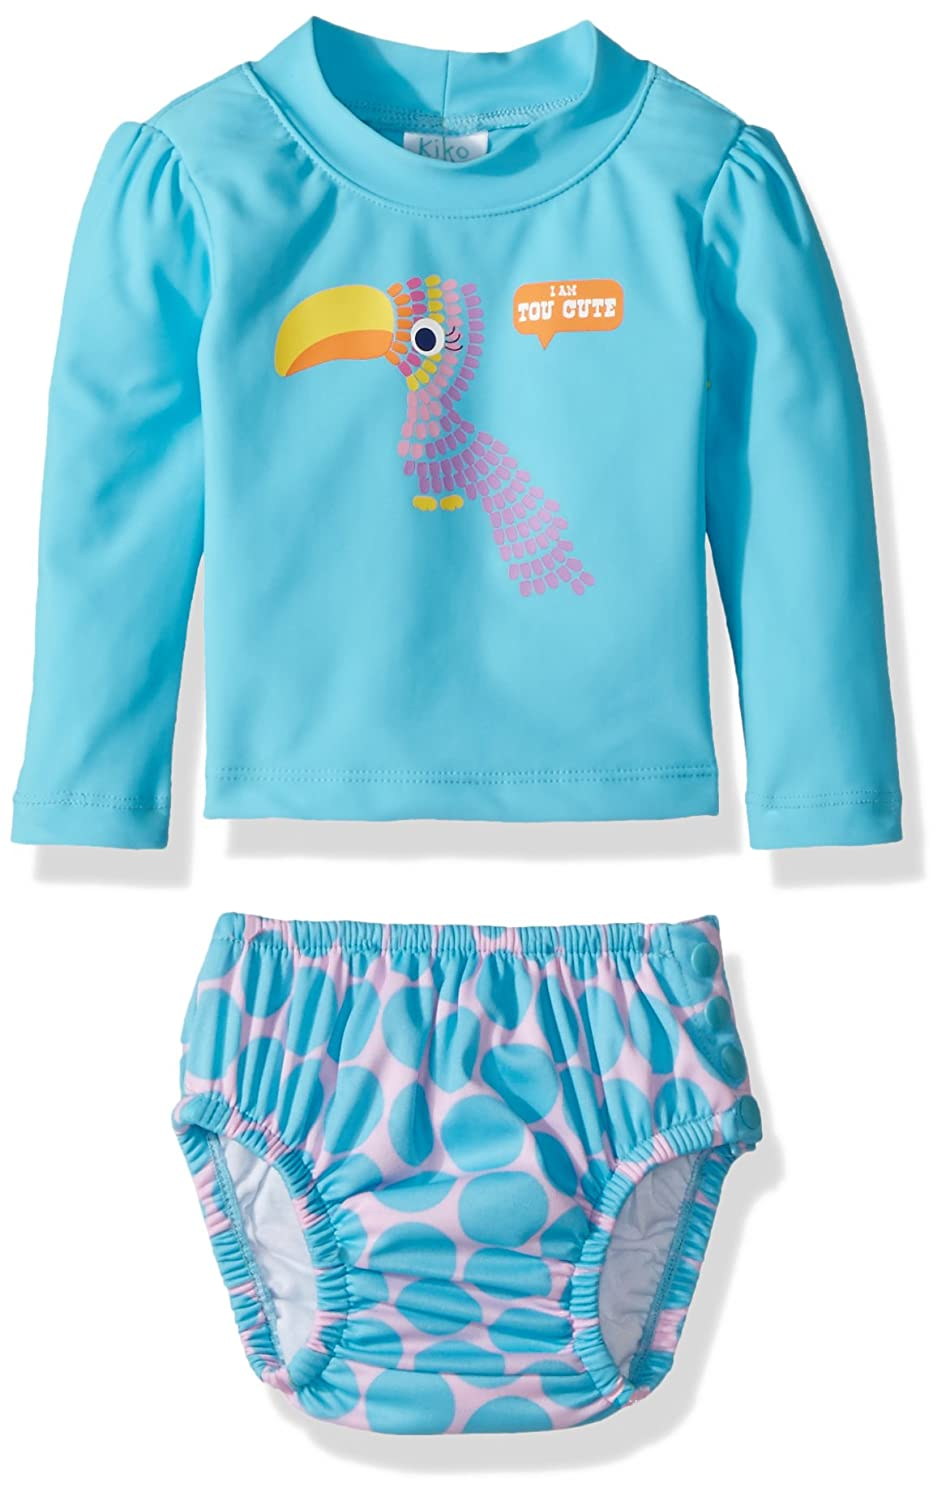 KIKO /& MAX Girls Baby Rashguard and Diaper Cover Swim Set